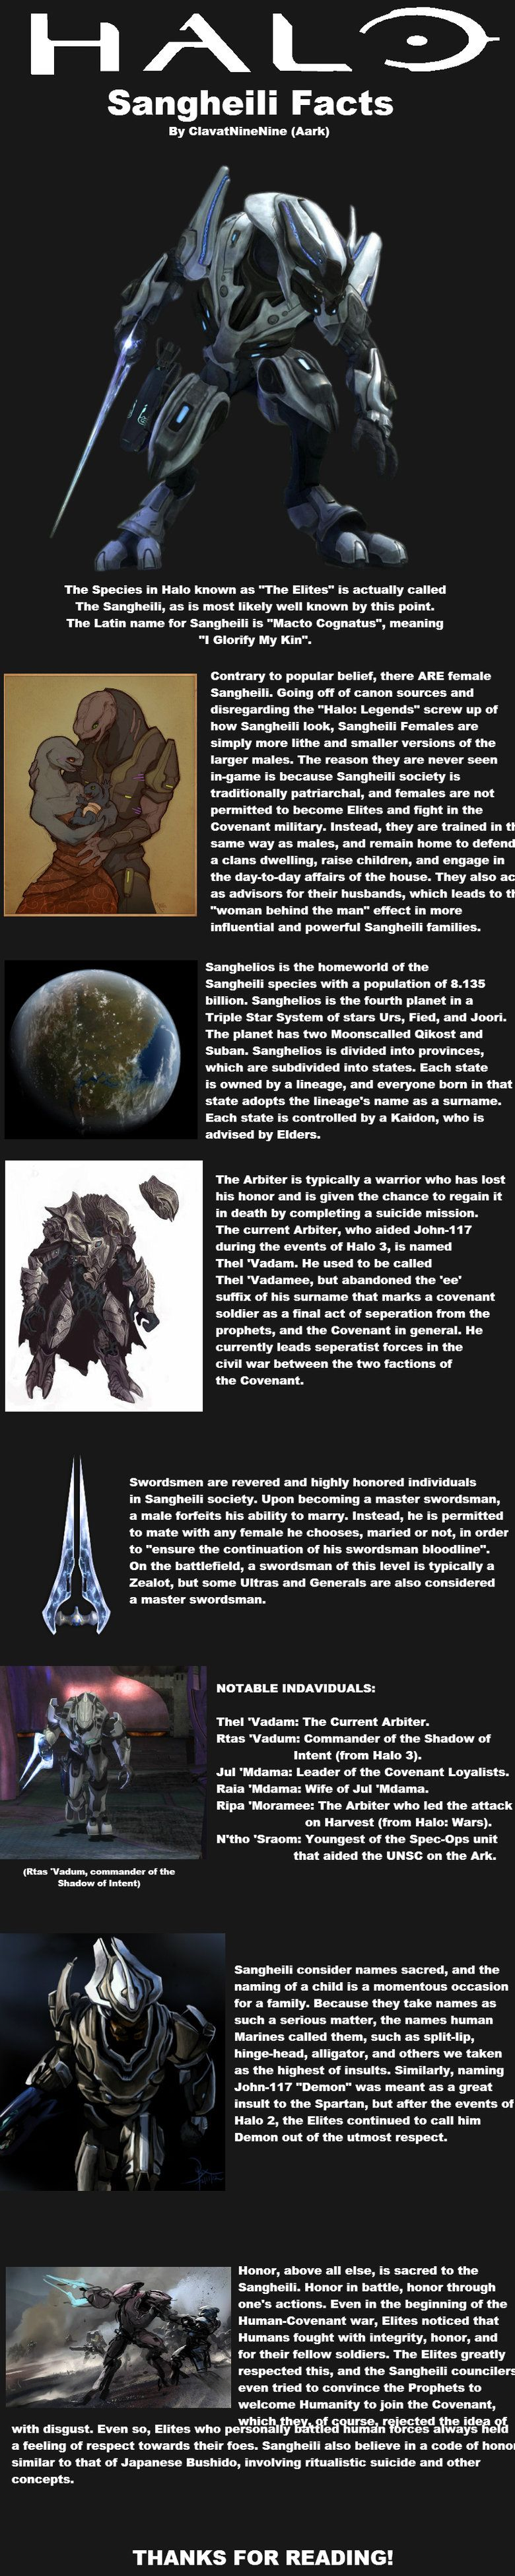 HALO: Sangheili Facts // funny pictures - funny photos